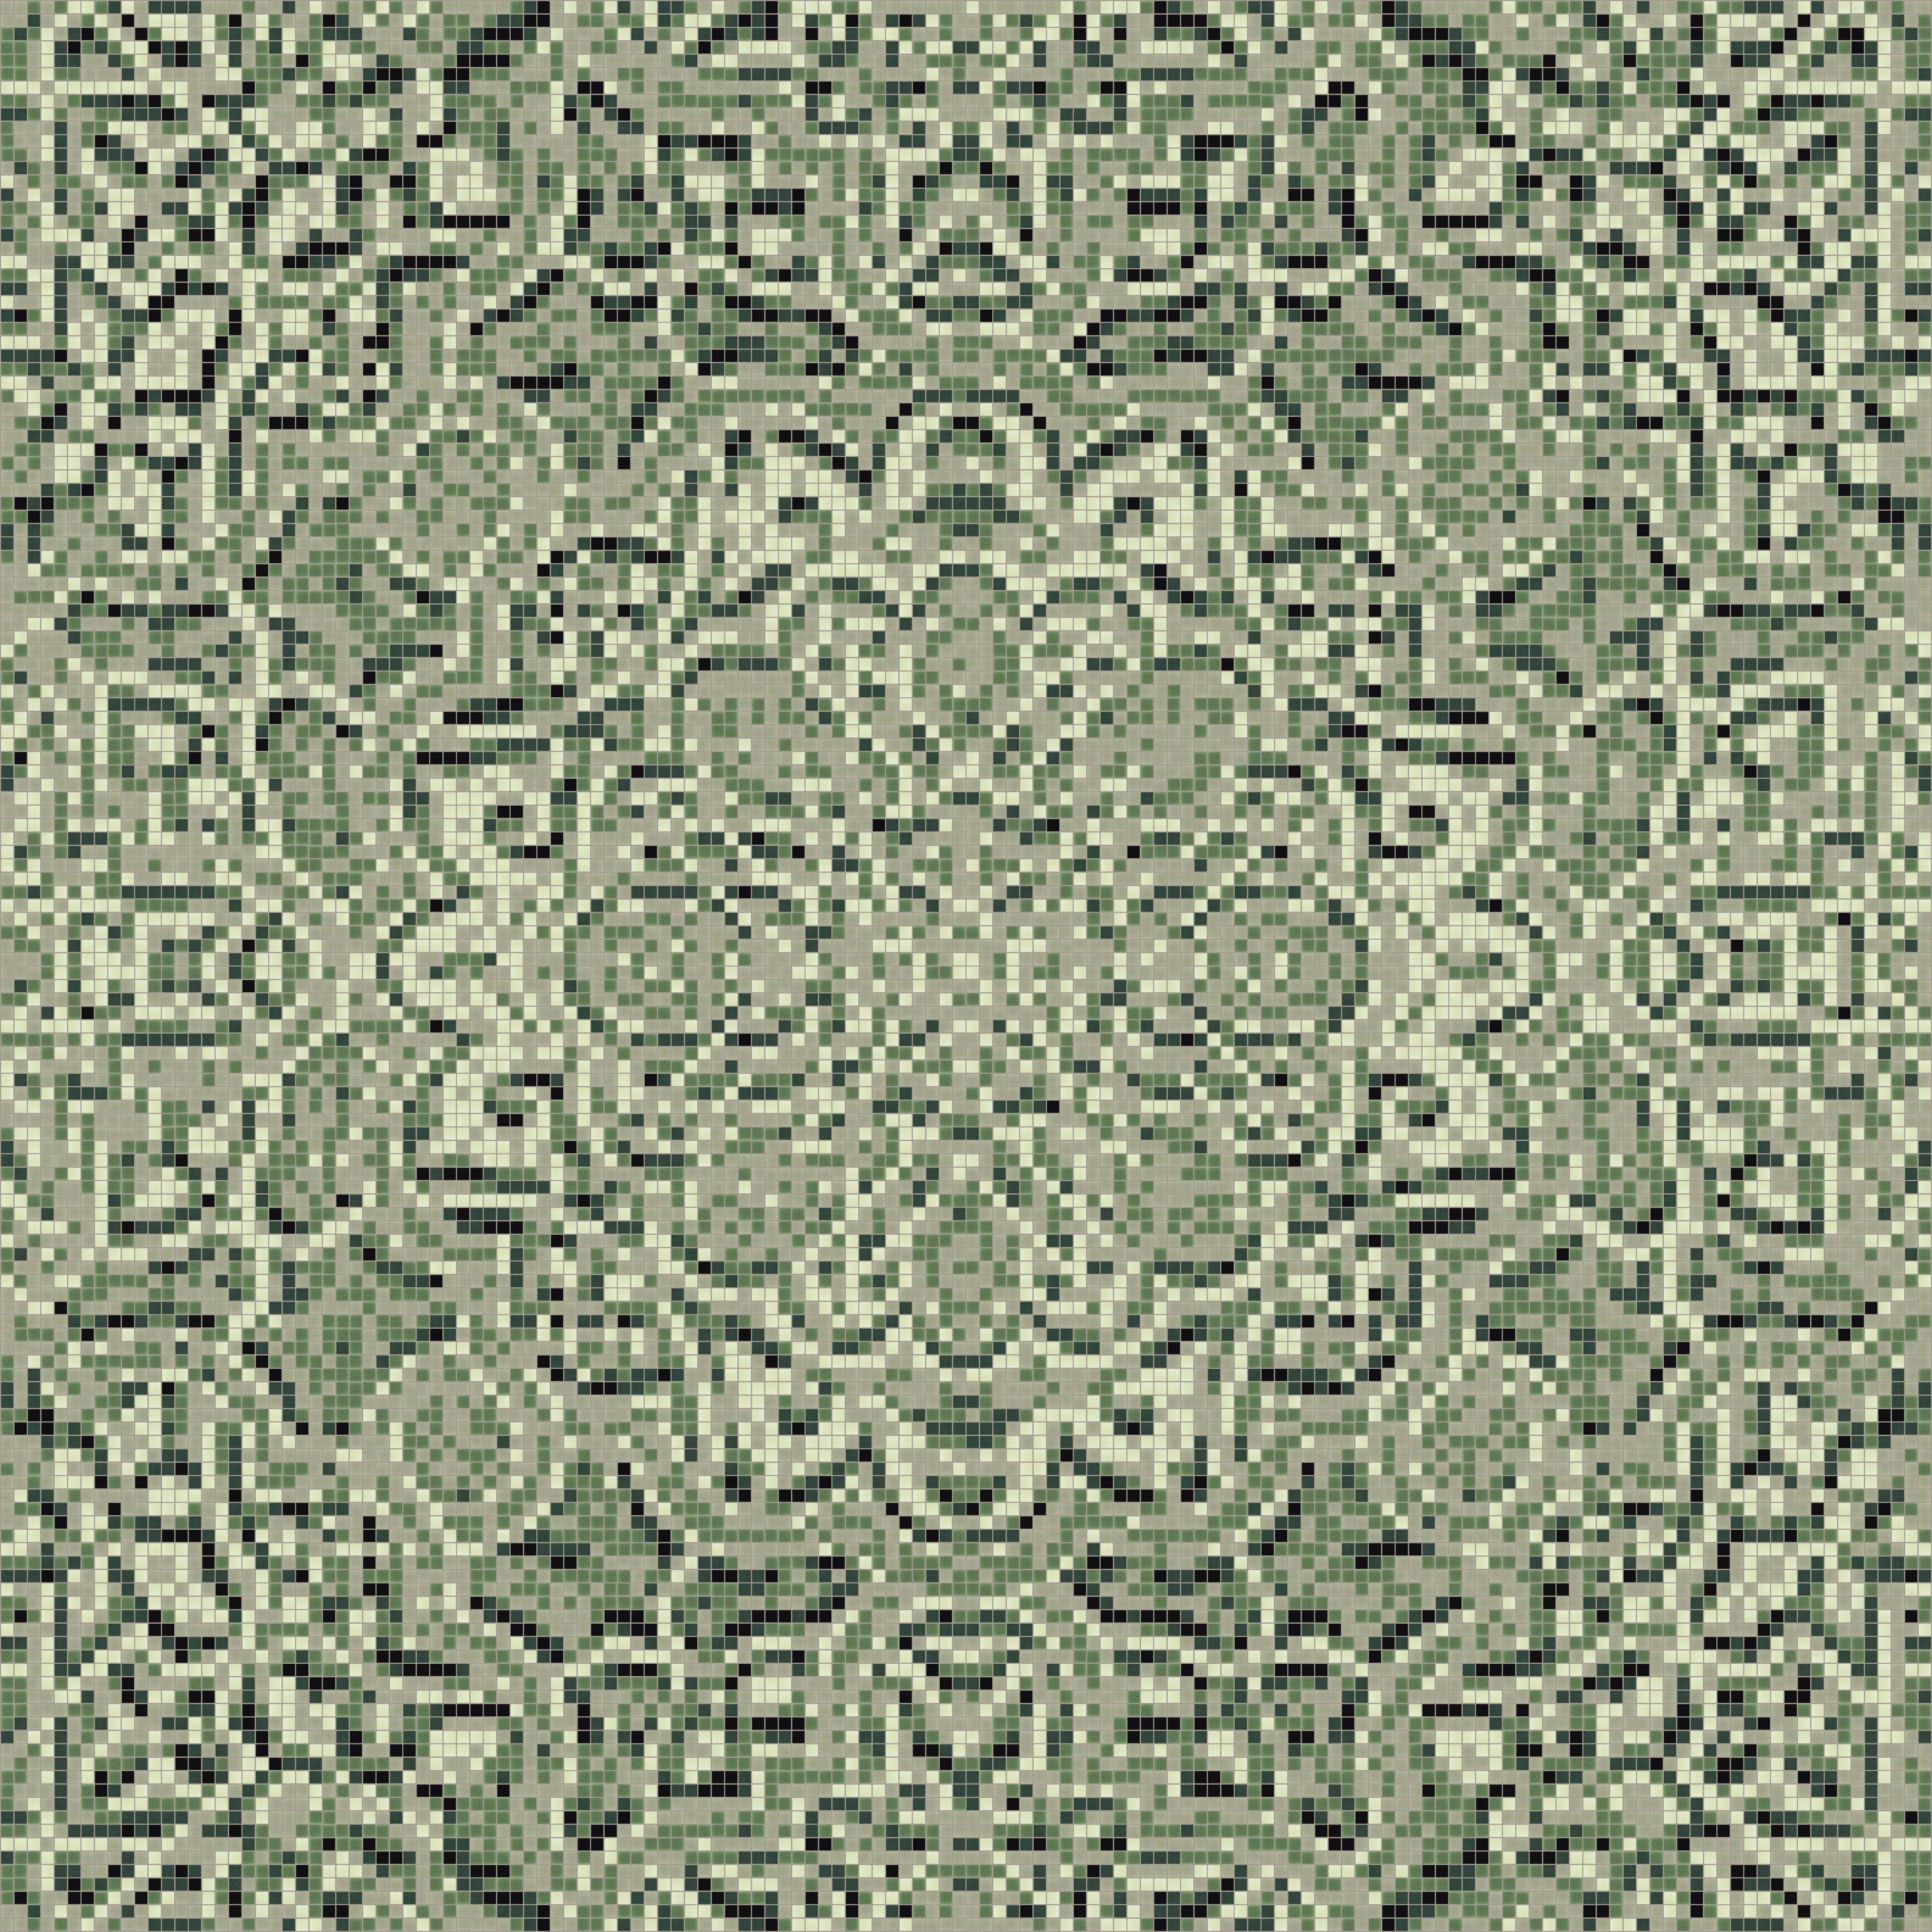 Motif Relief Green Flowing Vines Tile Pattern Relief Garden By Artaic